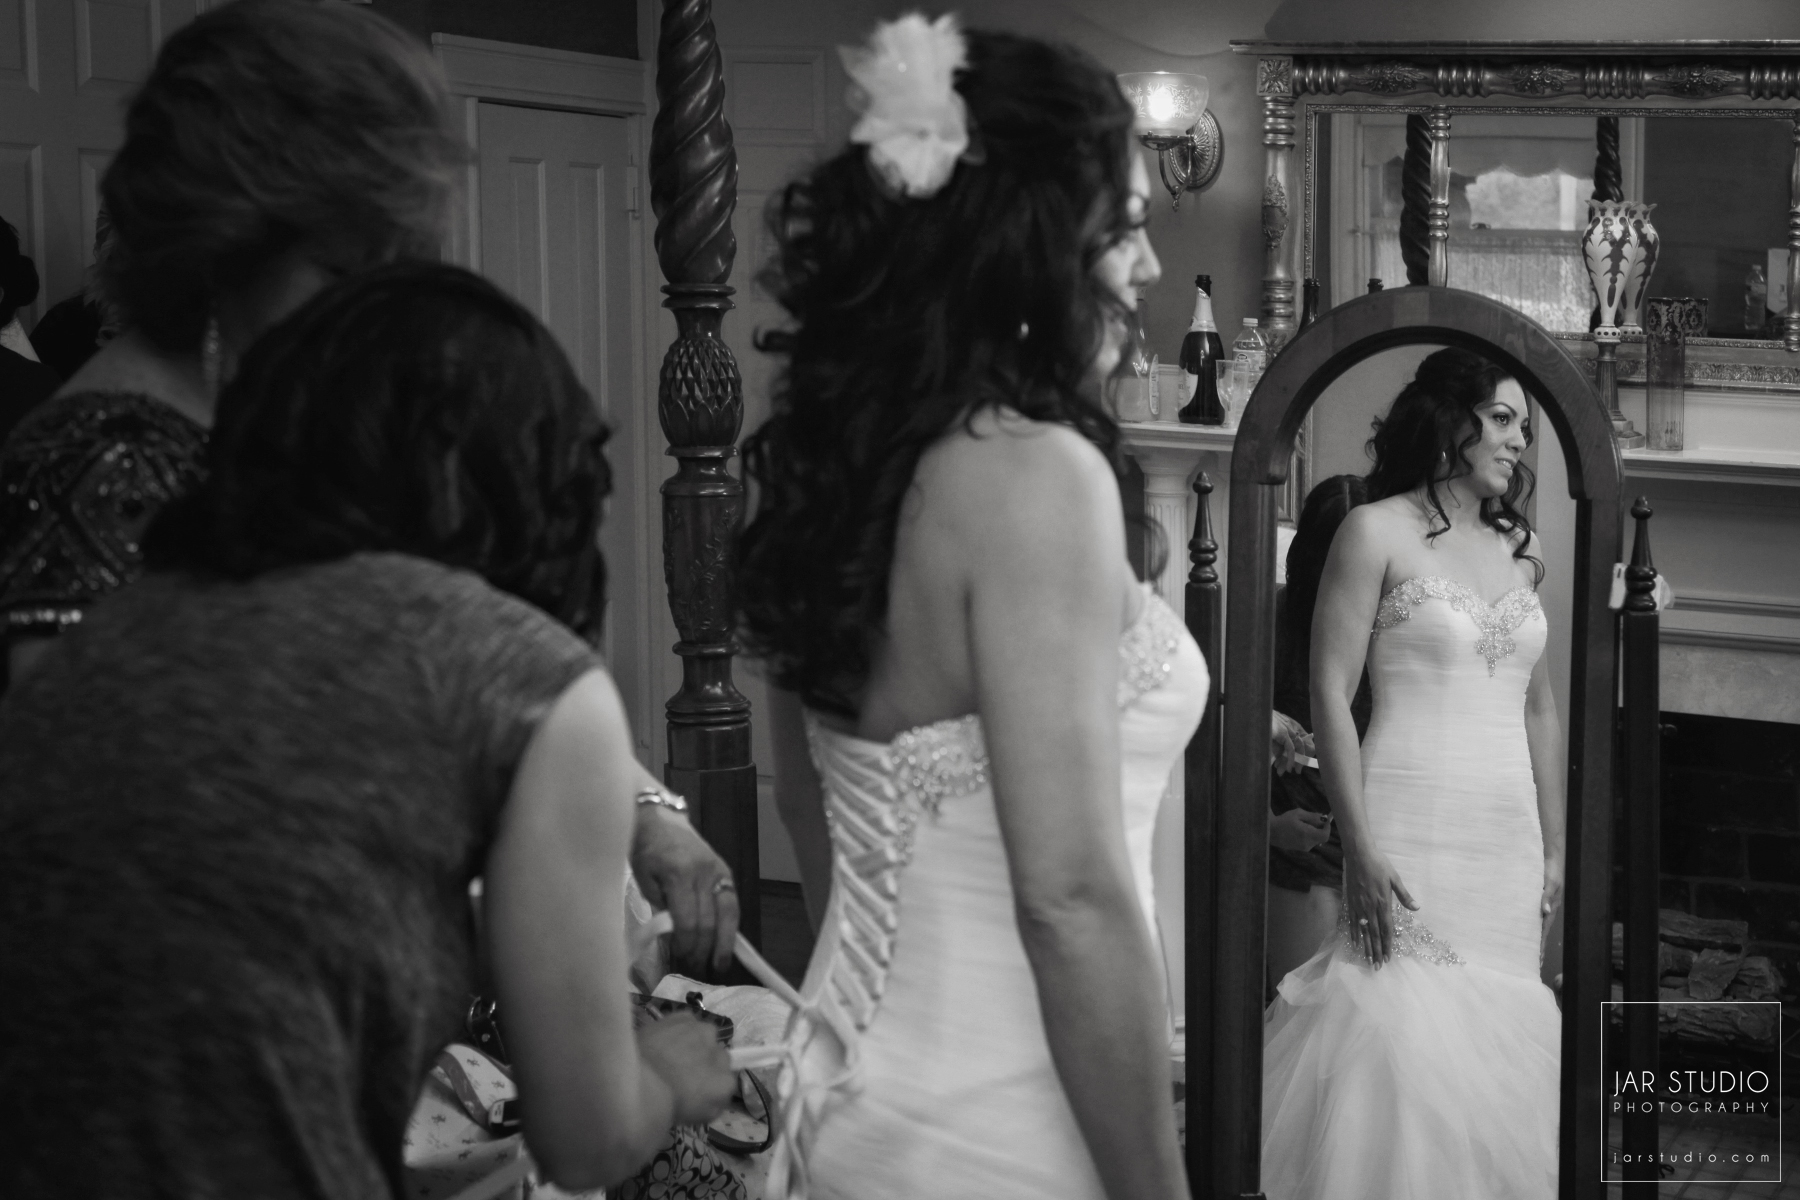 11-bride-getting-ready-dr-phillips-house-jarstudio-photography.JPG